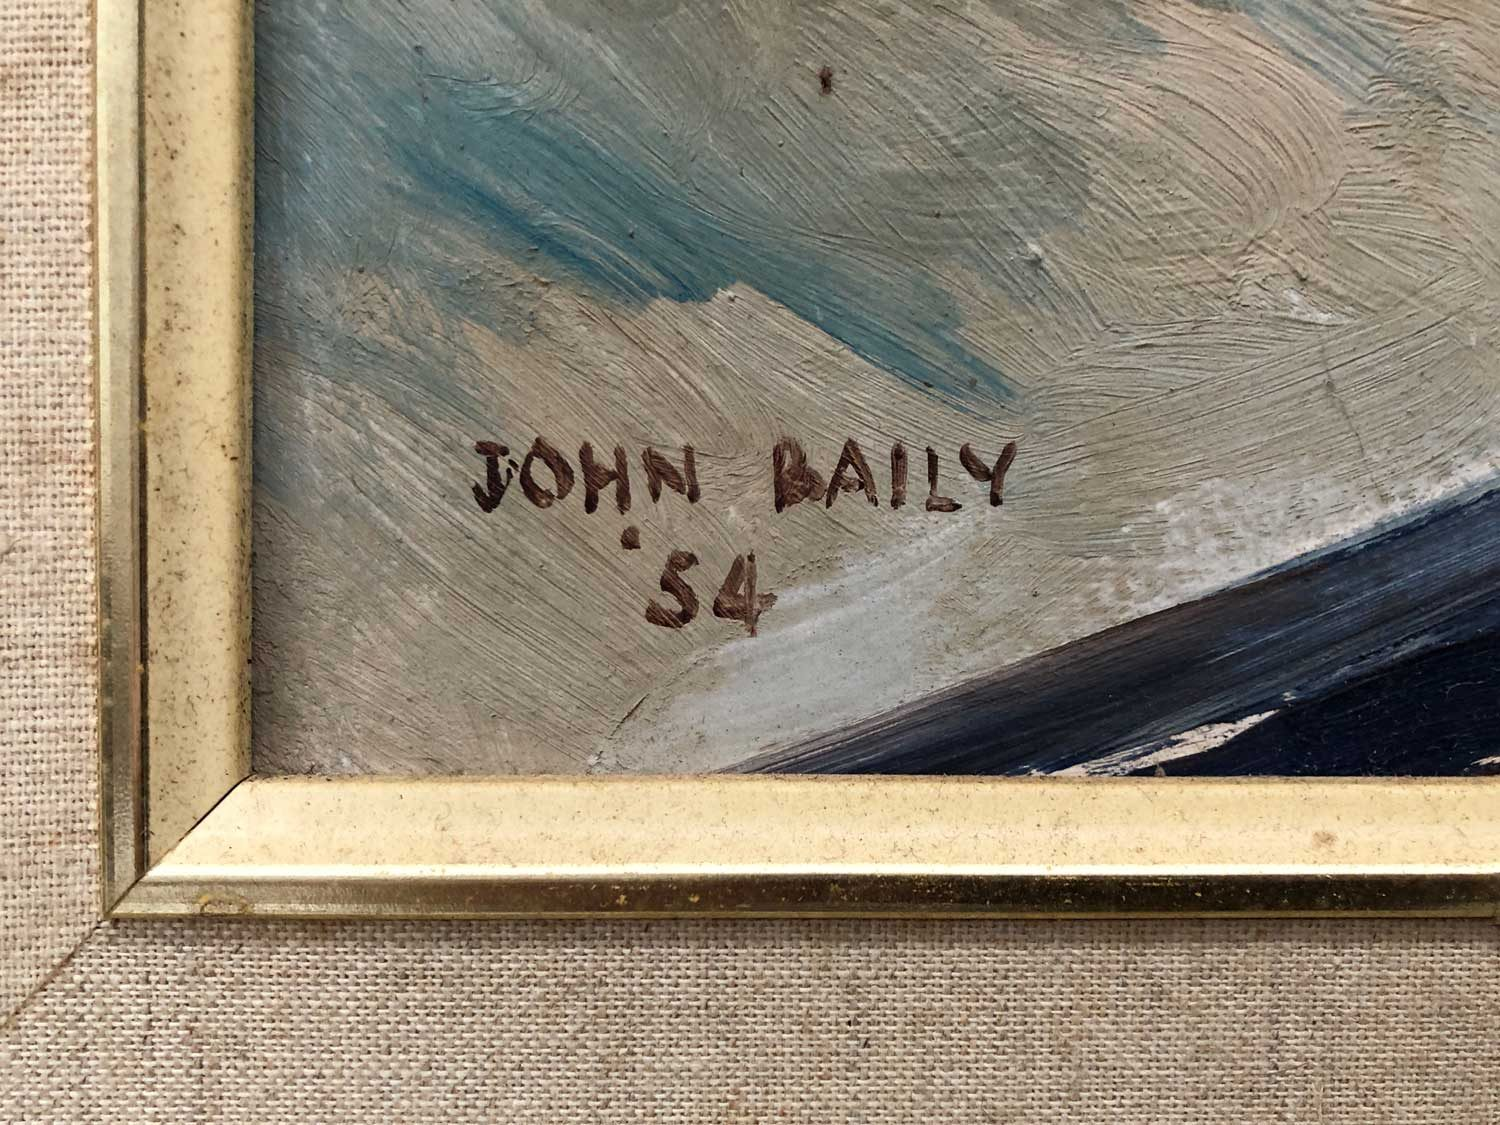 Harold John Baily Boats in Bay 1954 artwork signature